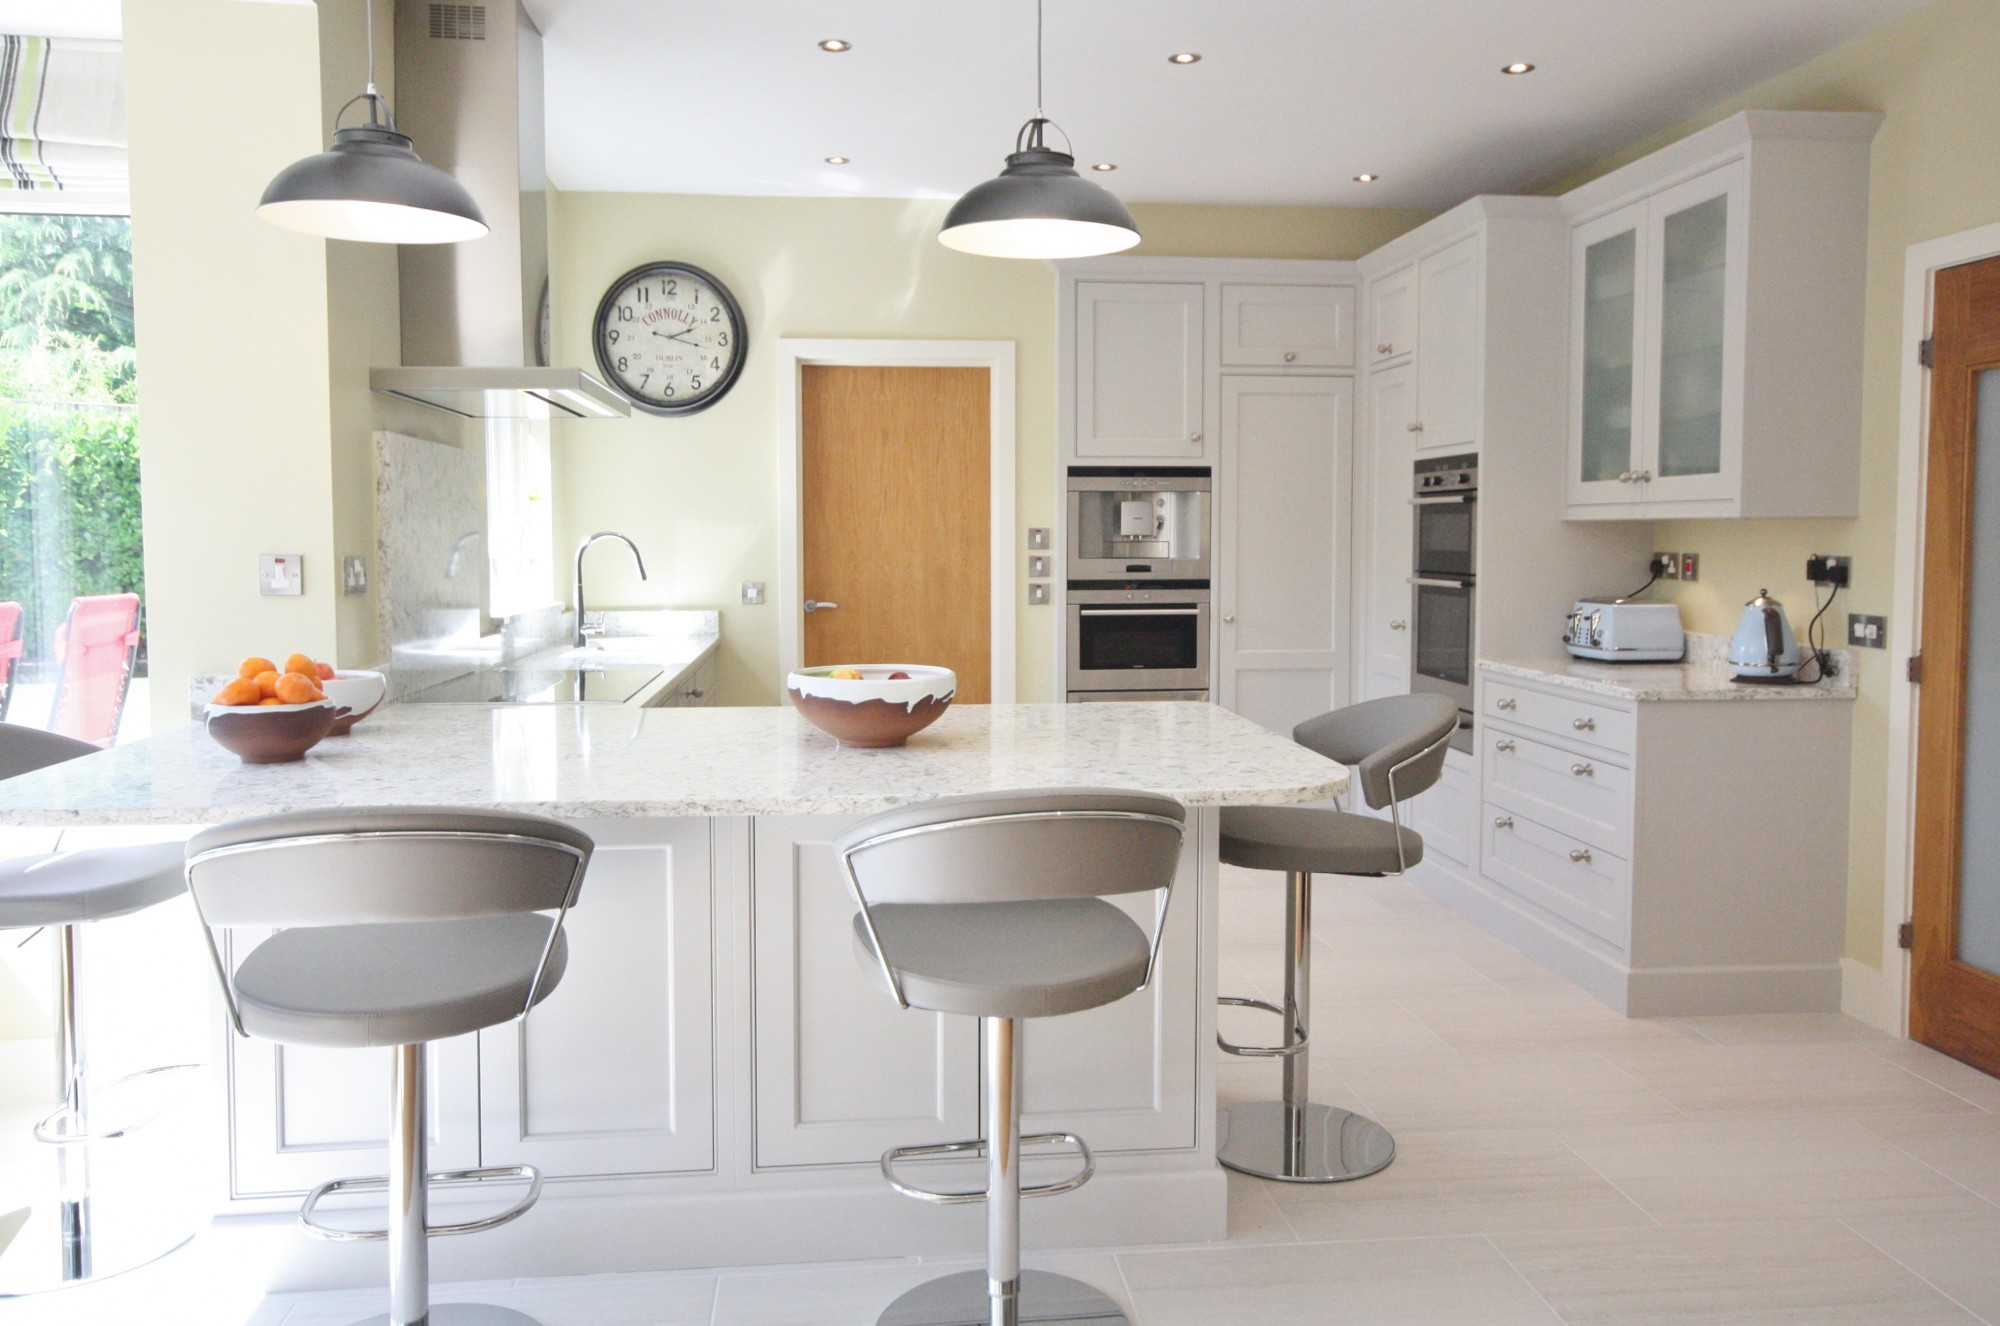 Astonishing Kitchen Design Dublin Contemporary - Image design house ...